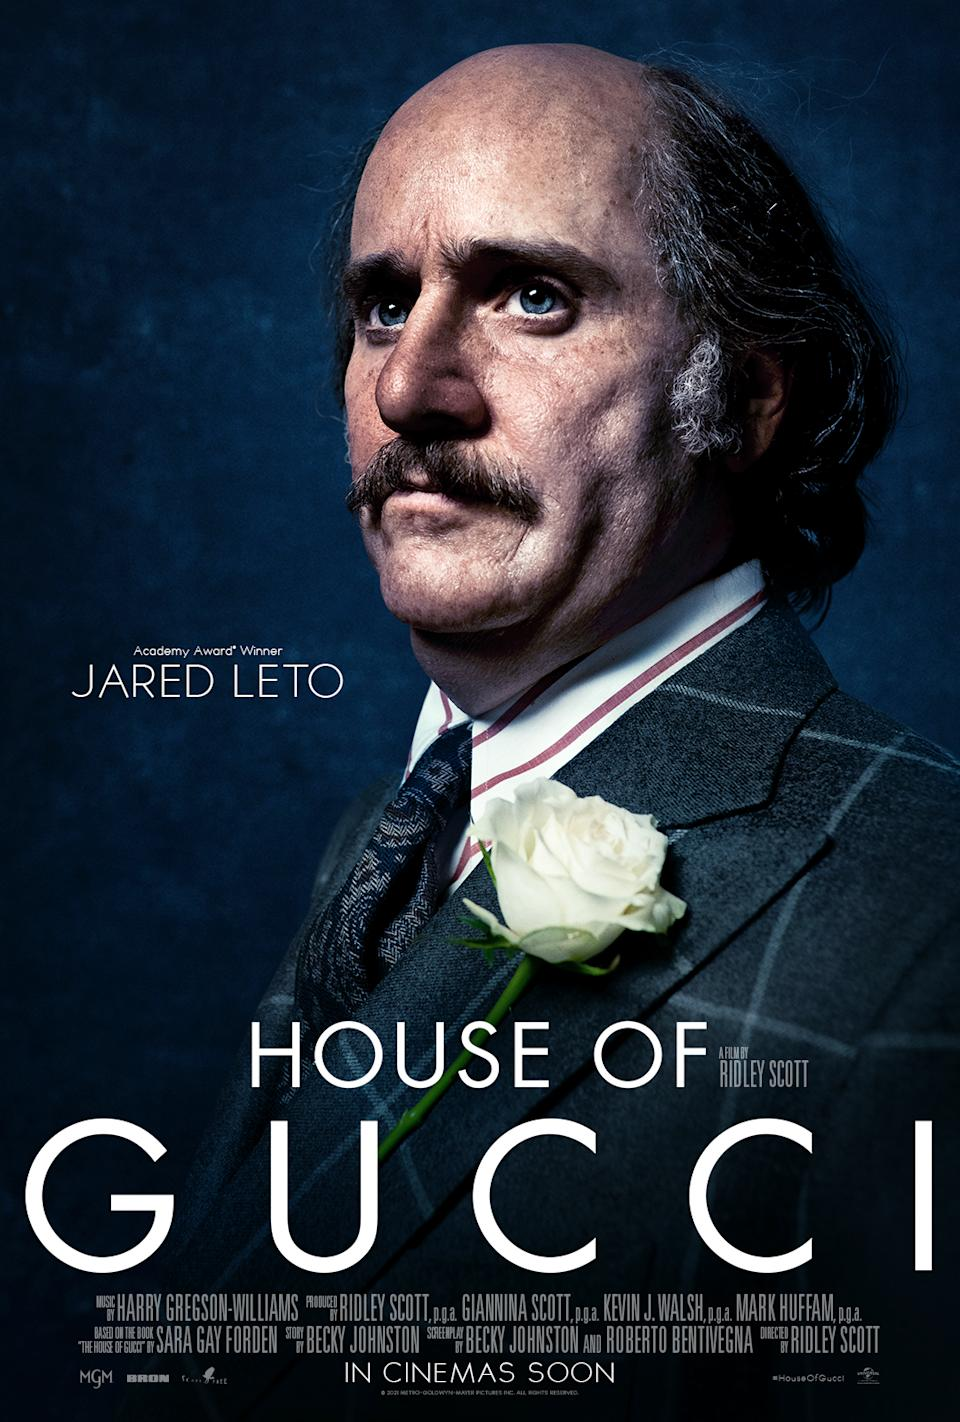 Jared Leto in House of Gucci (Universal Pictures)